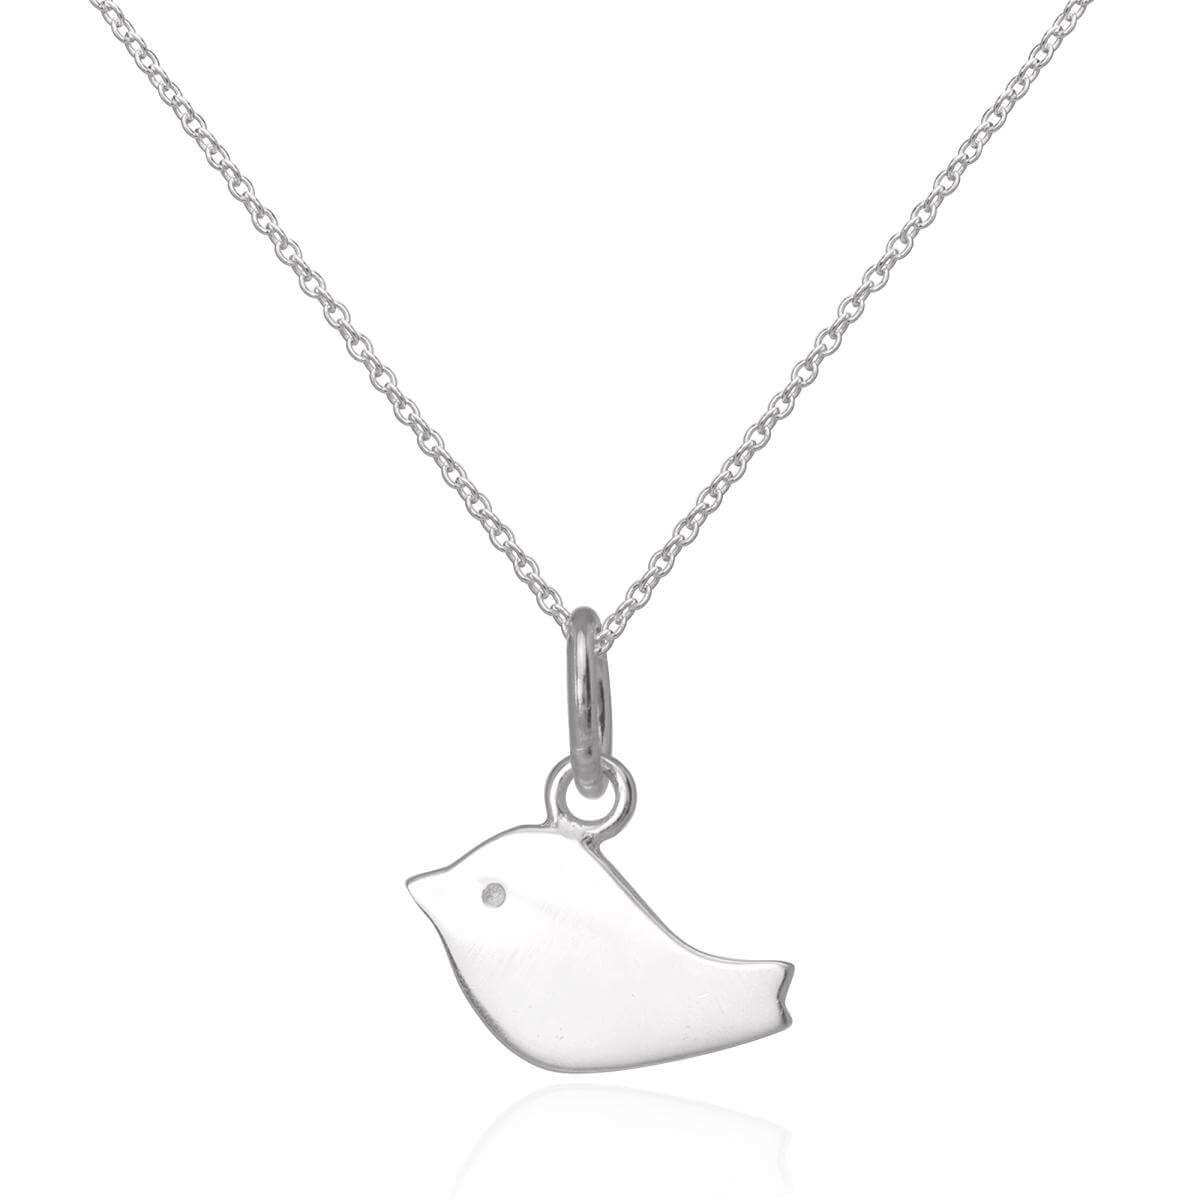 Simple Flat Sterling Silver Bird Pendant Necklace 16 - 22 Inches